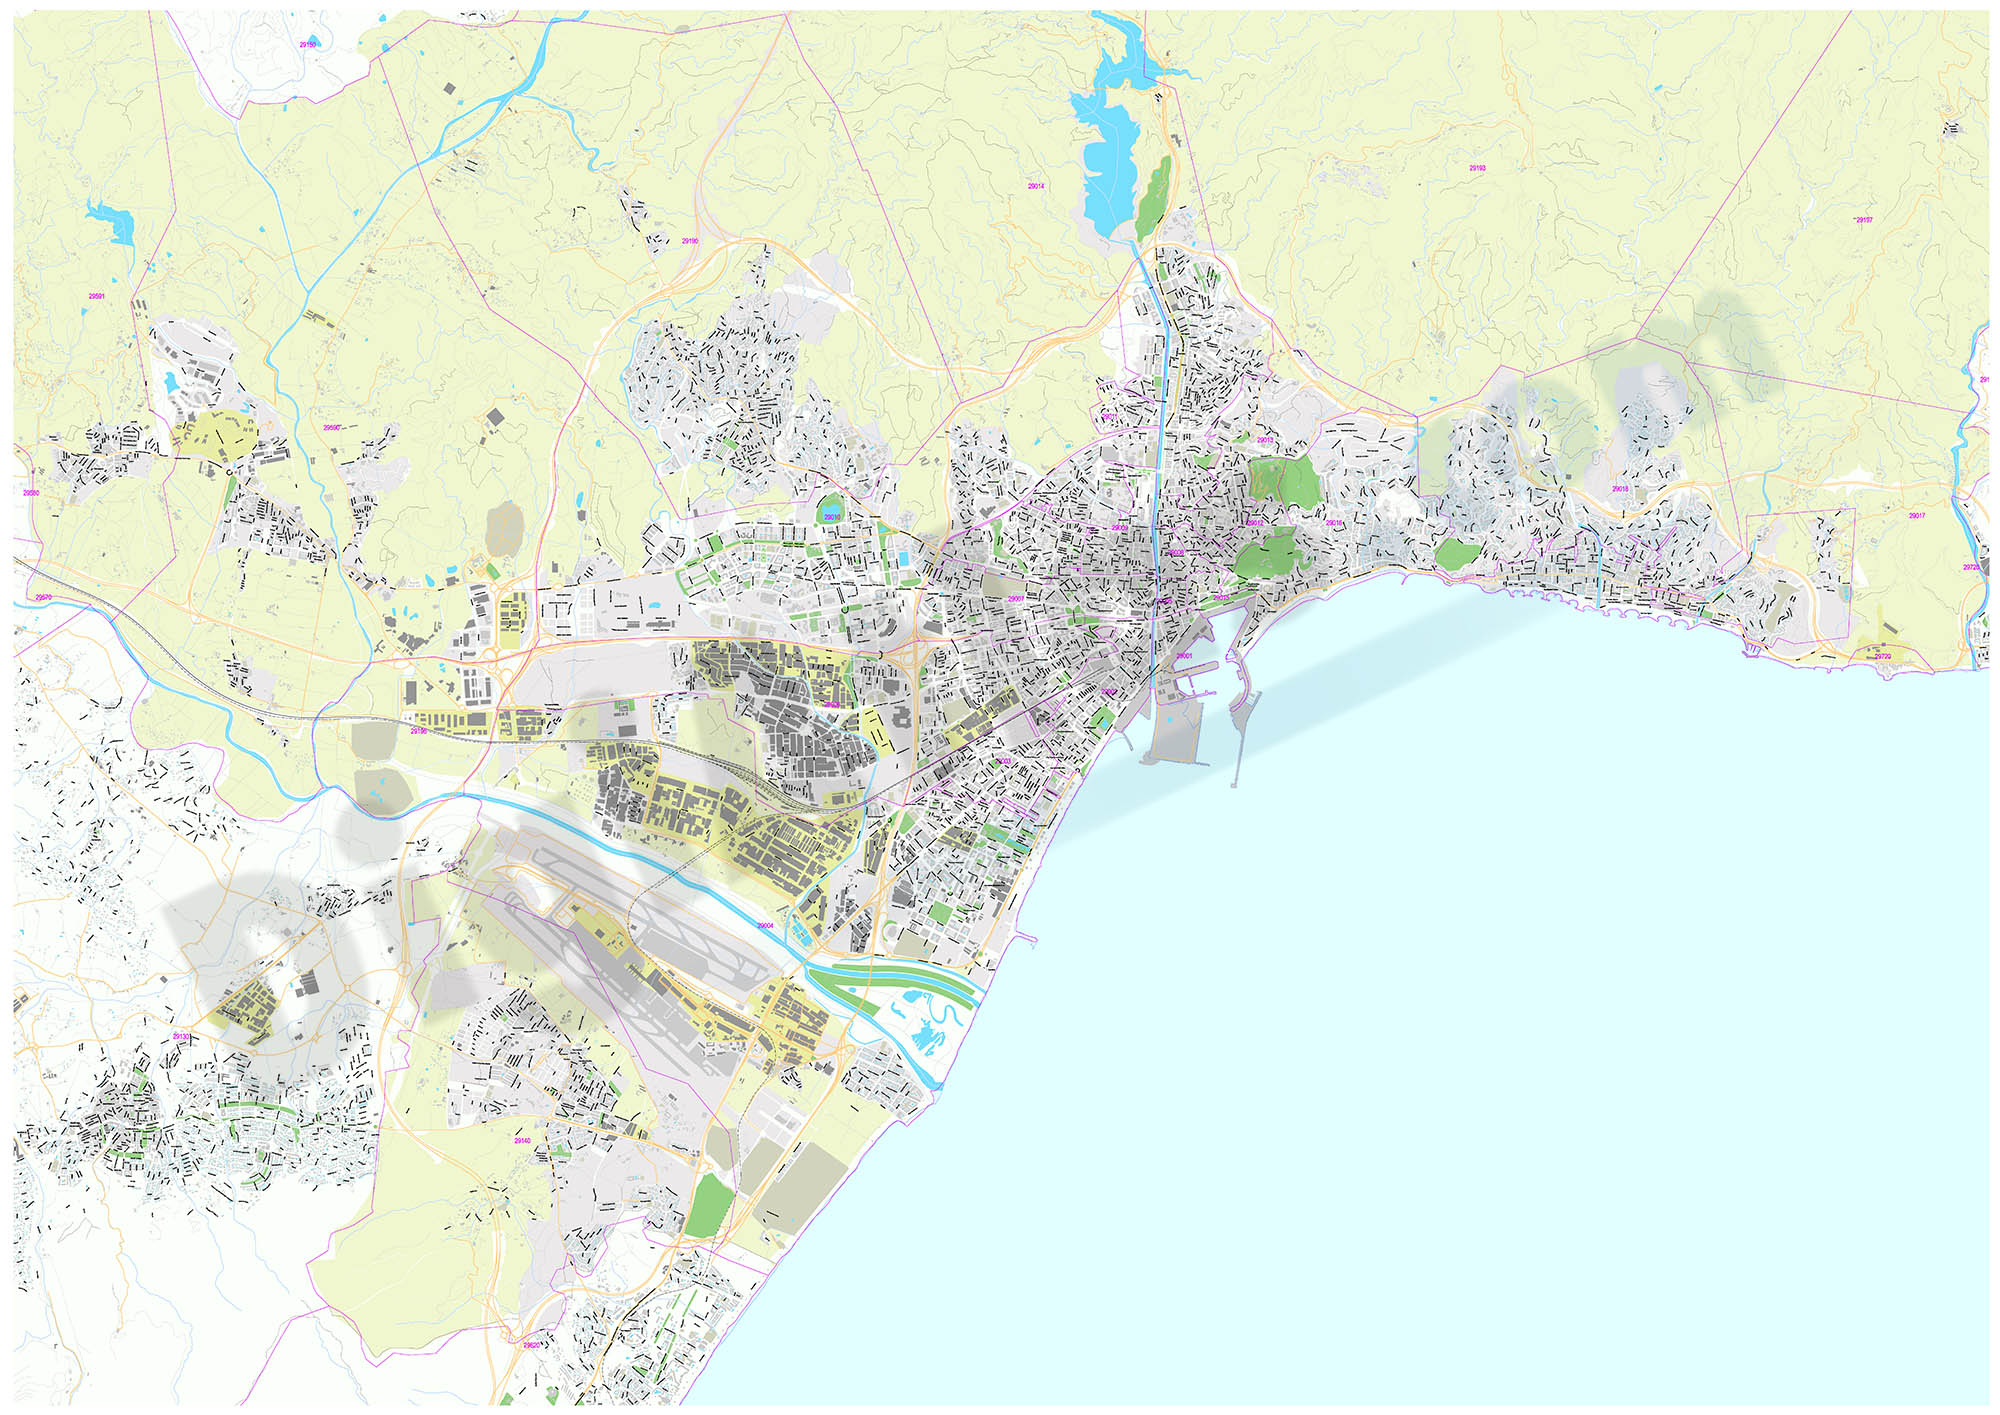 Malaga (Andalusia, Spain) - city map with postal codes